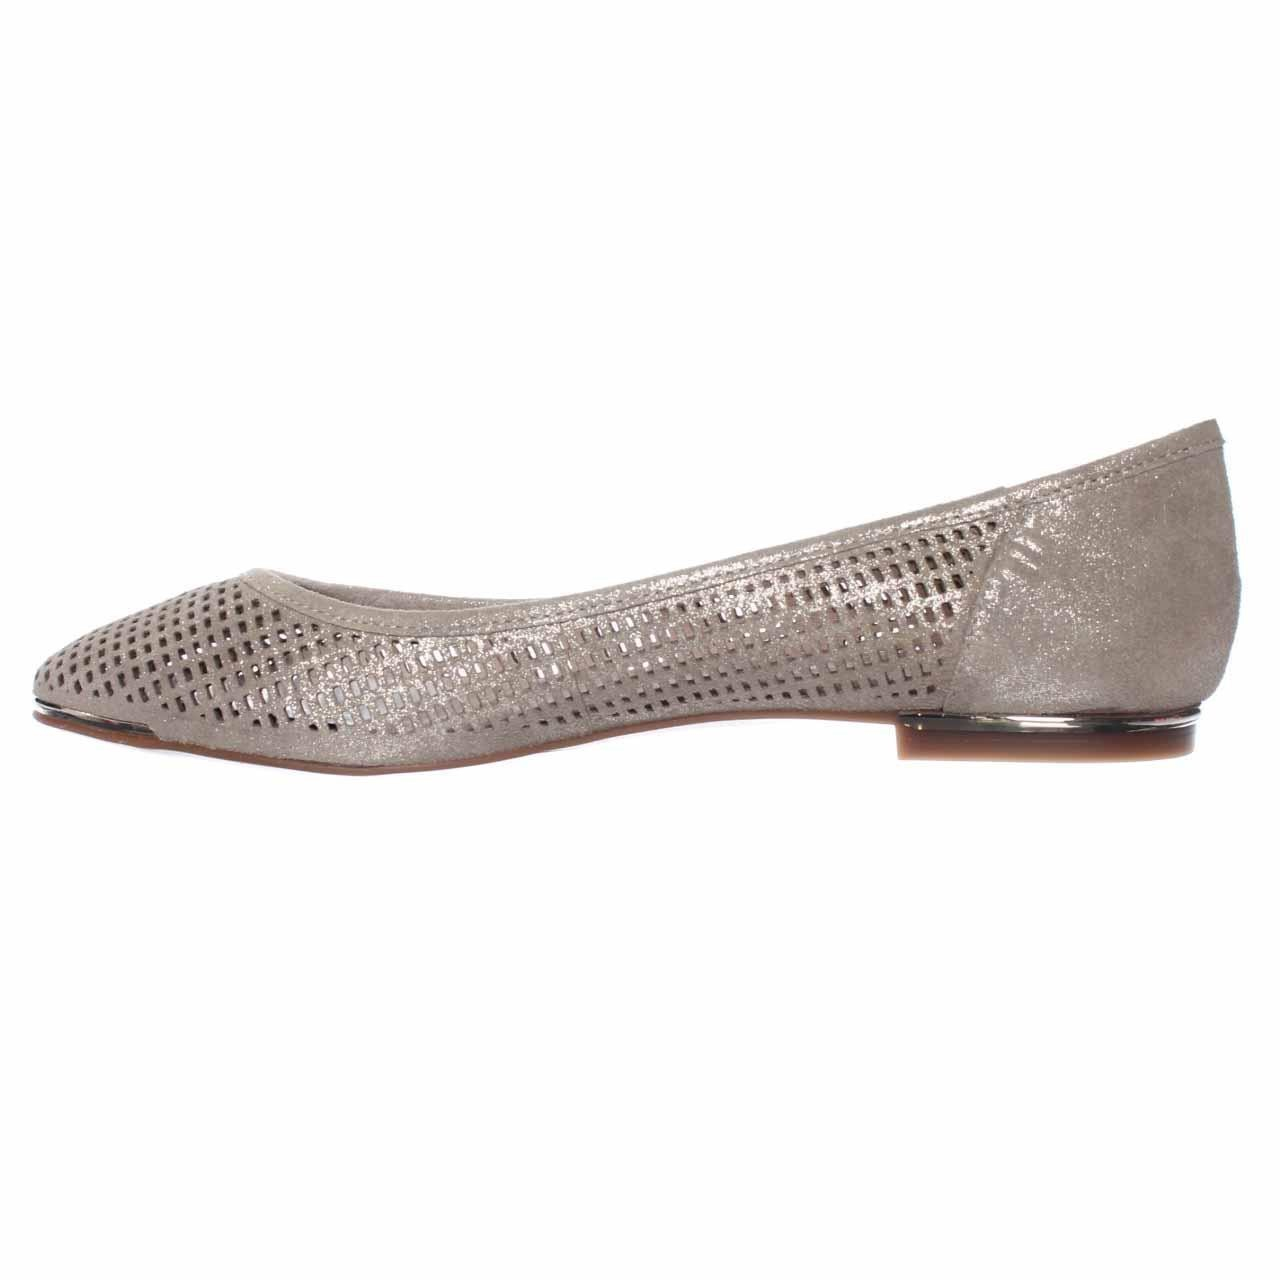 Vince Camuto White Pointed Shoes